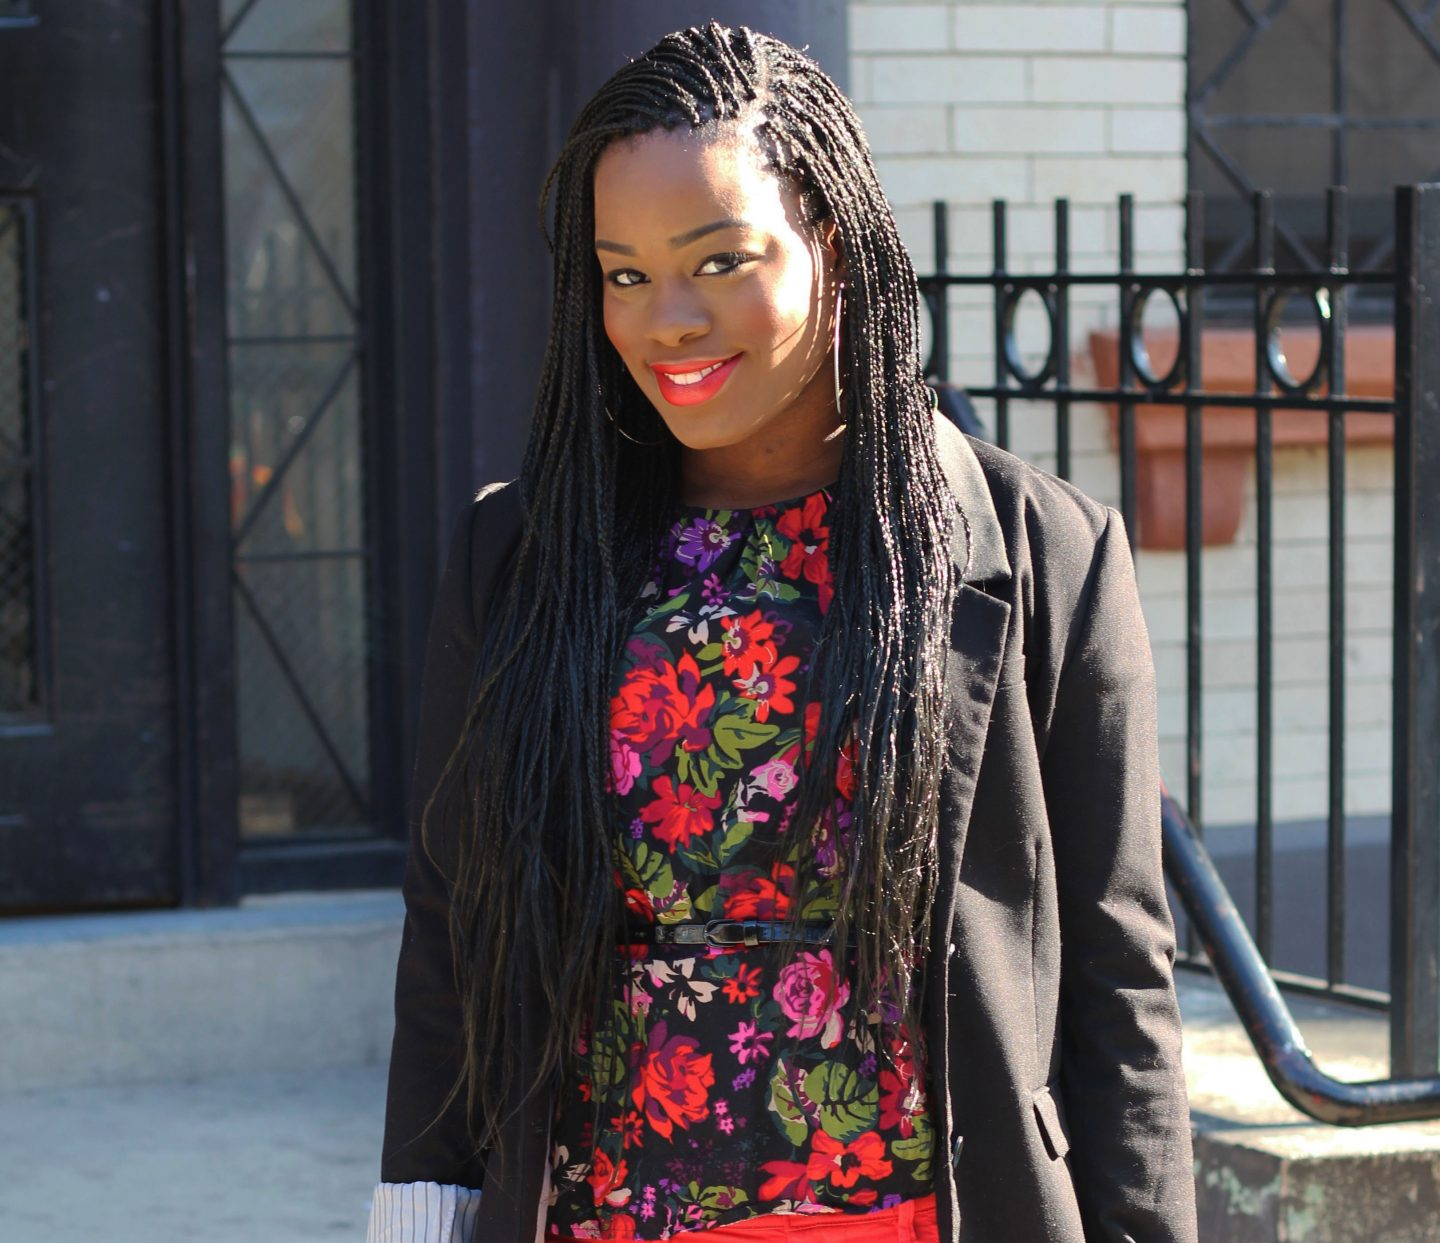 How To Maintain Your Box Braids While Keeping Your Own Hair Healthy